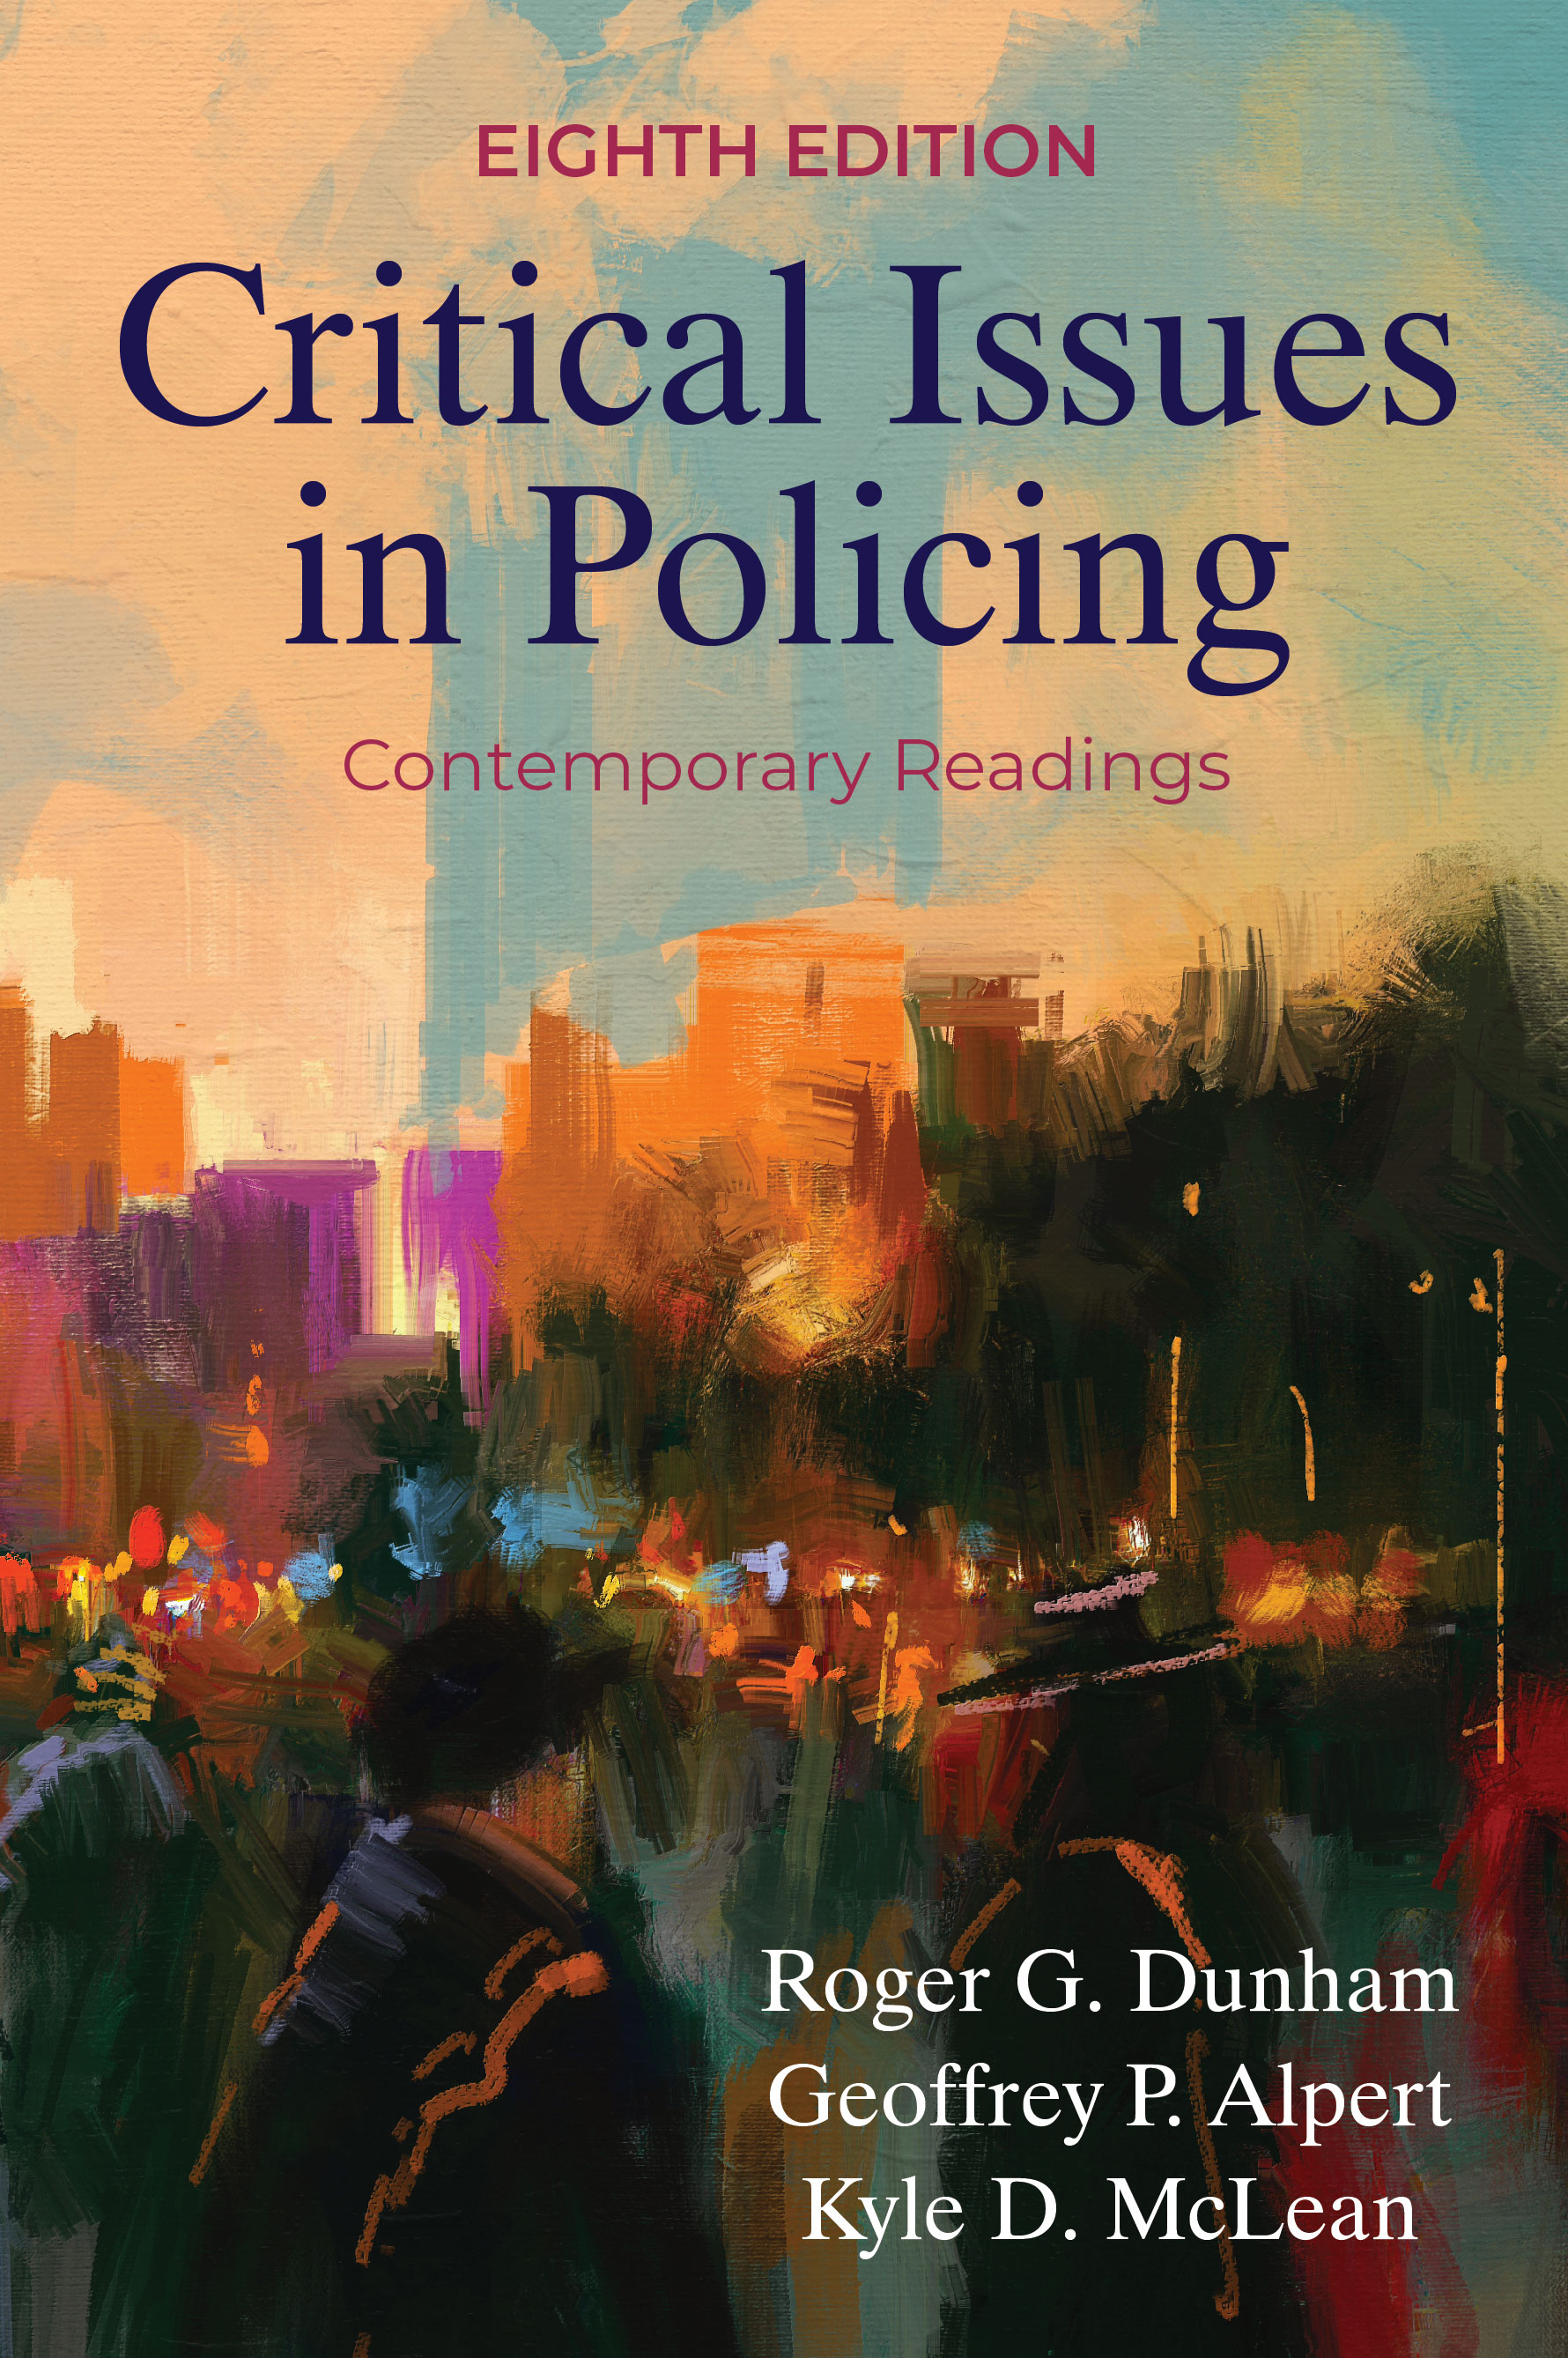 Critical Issues in Policing: Contemporary Readings by Roger G. Dunham, Geoffrey P. Alpert, Kyle D. McLean